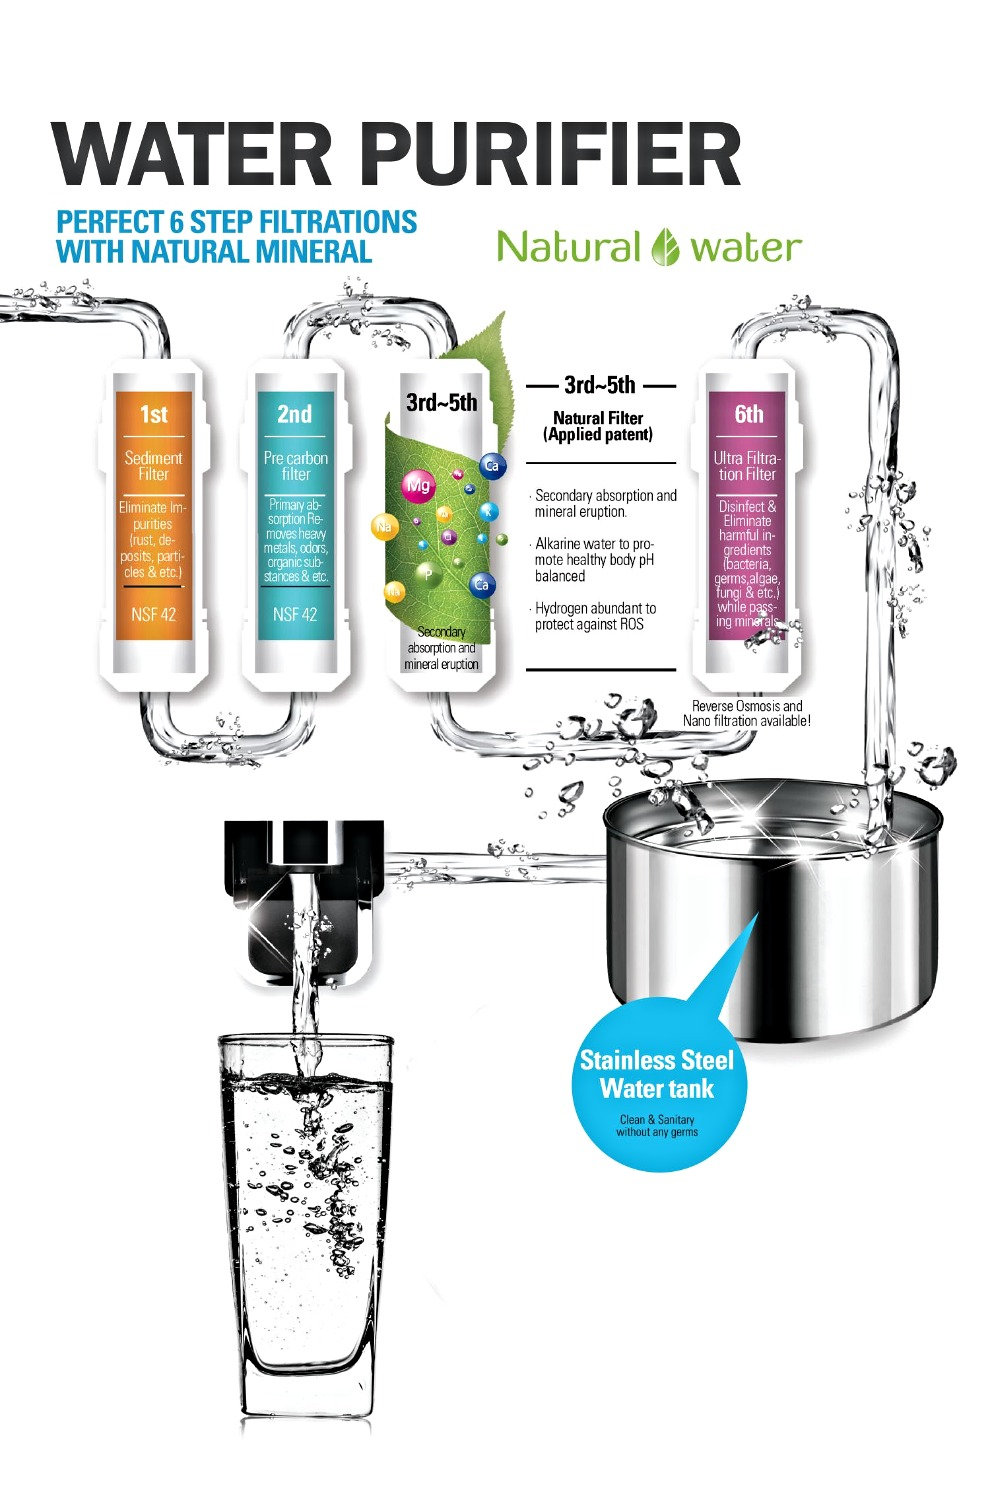 unlimited drinking water purifier system diagram